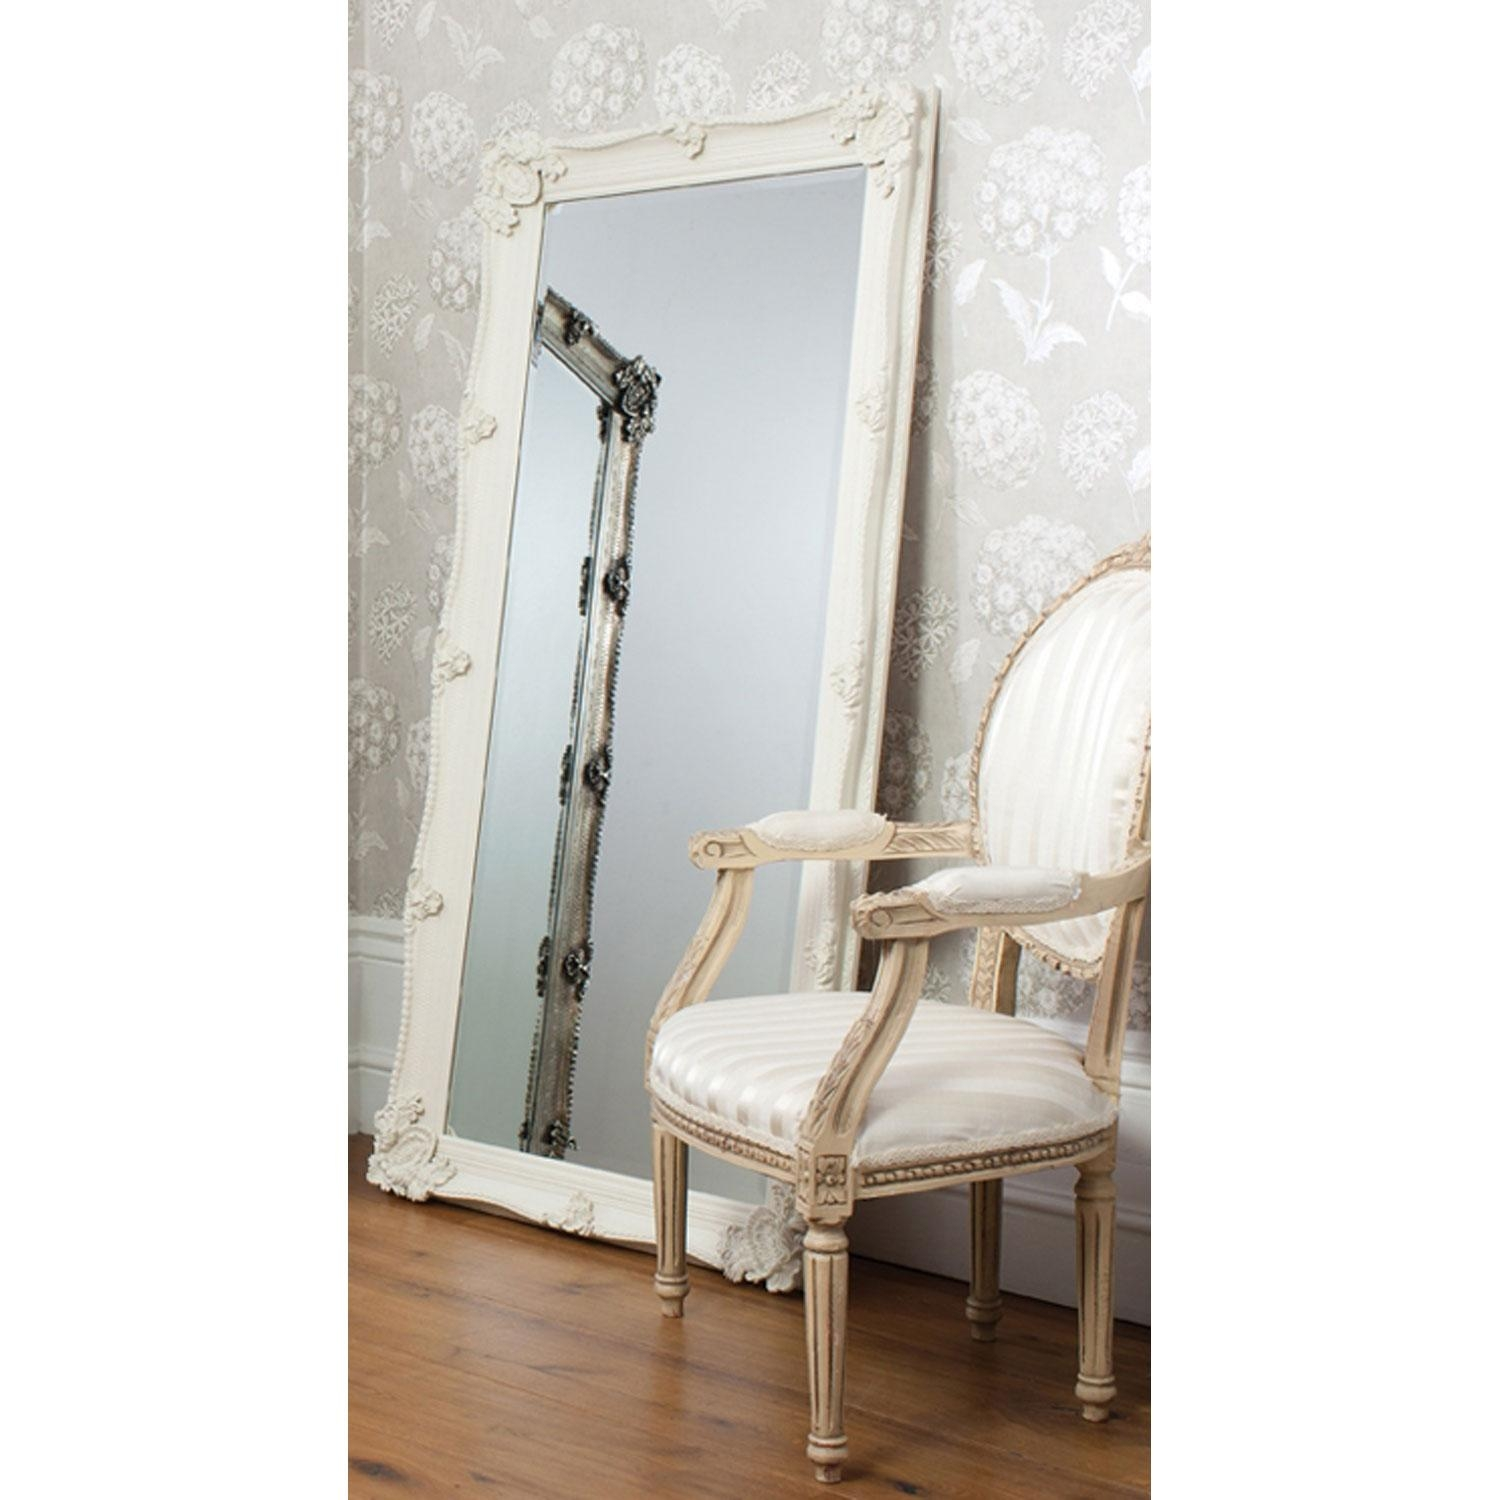 Bedroom: Sergio Leaner Mirror In Antique Gold Finish M3105Bec For Regarding White Baroque Floor Mirror (Image 7 of 20)